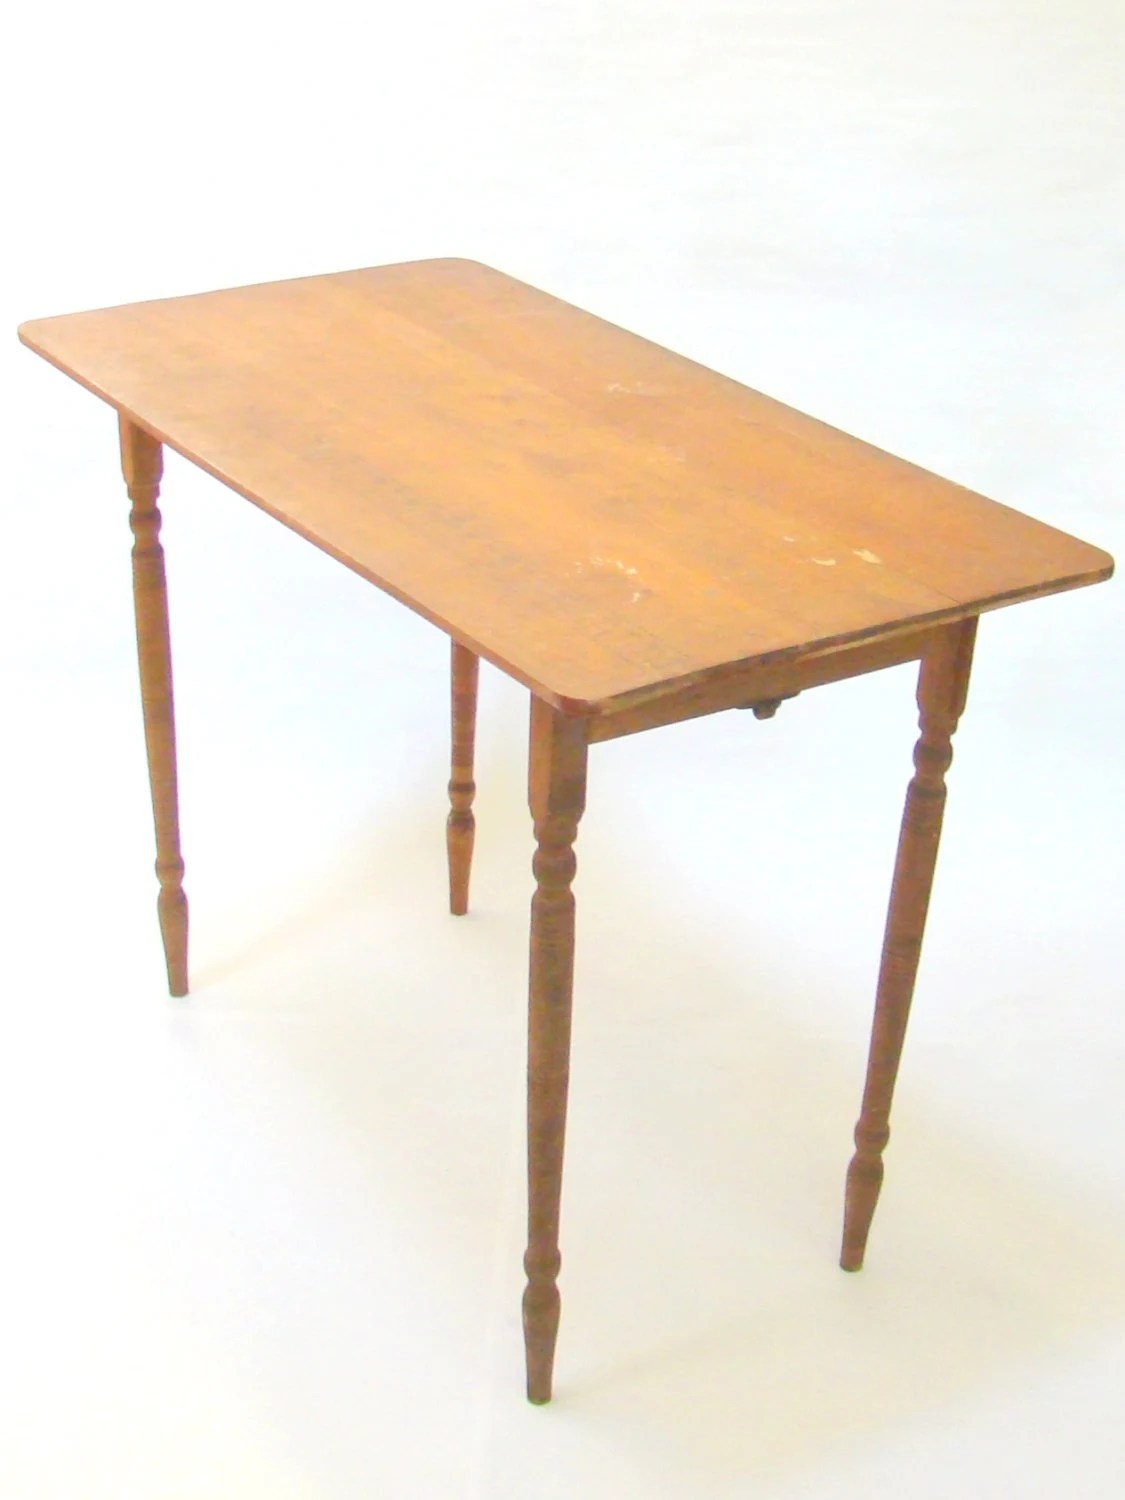 Vintage Sewing Table Vintage Tailors Table Crafting